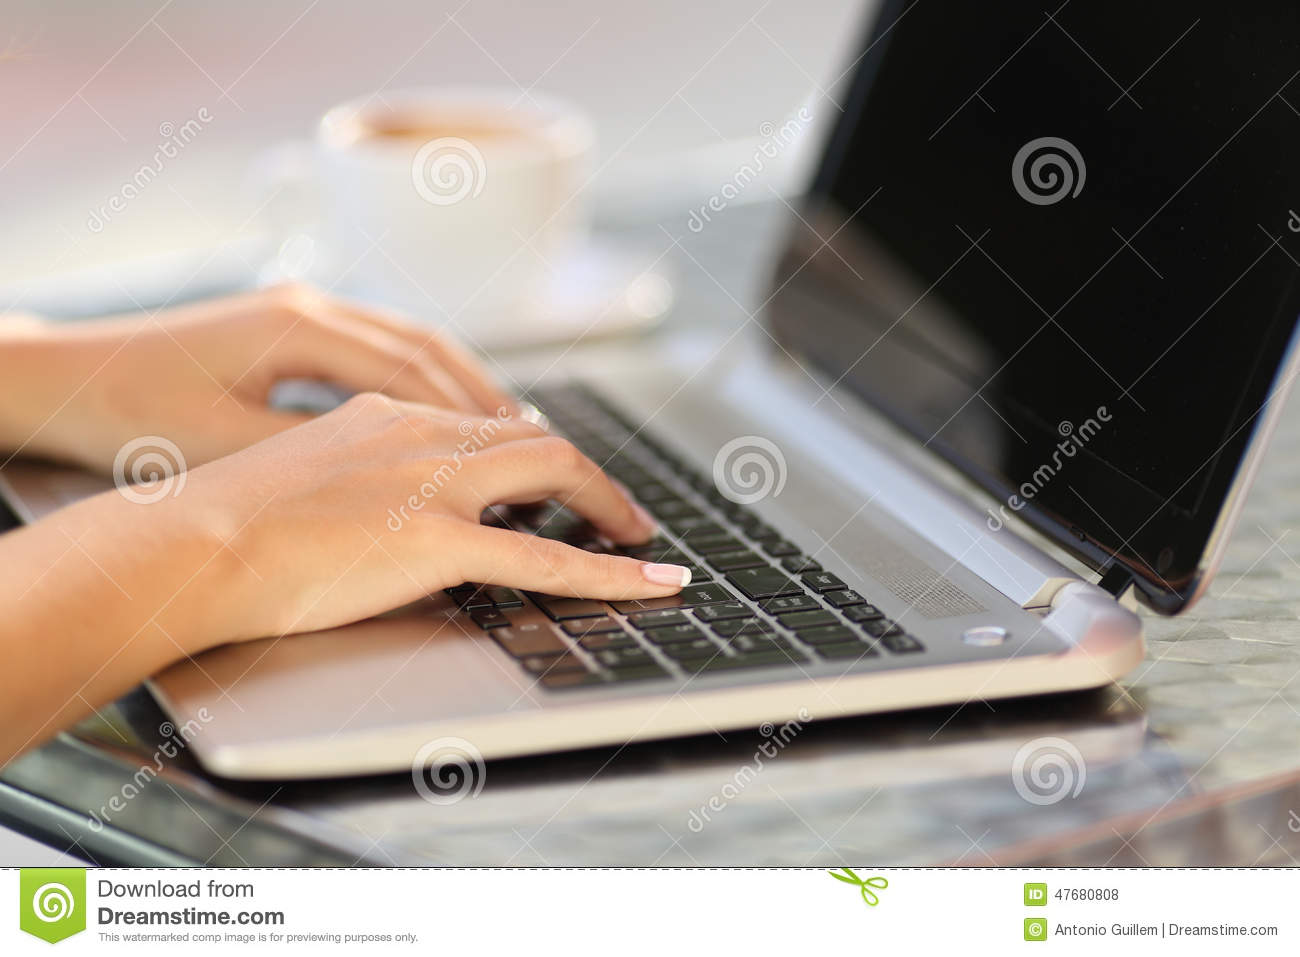 Woman hands working with a laptop in a coffee shop